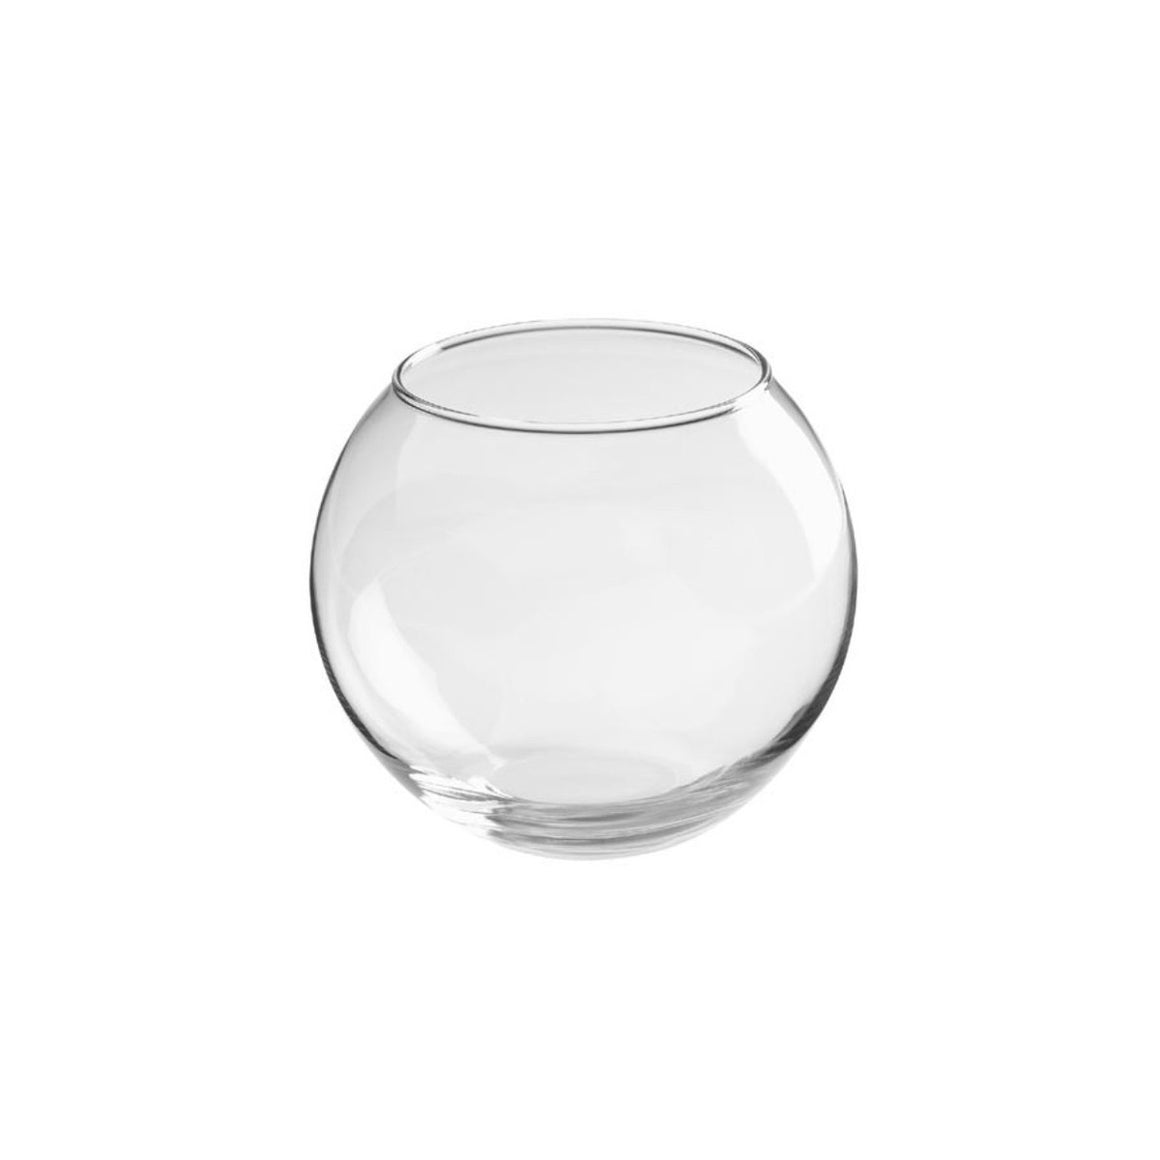 Glass Vase - Fishbowl